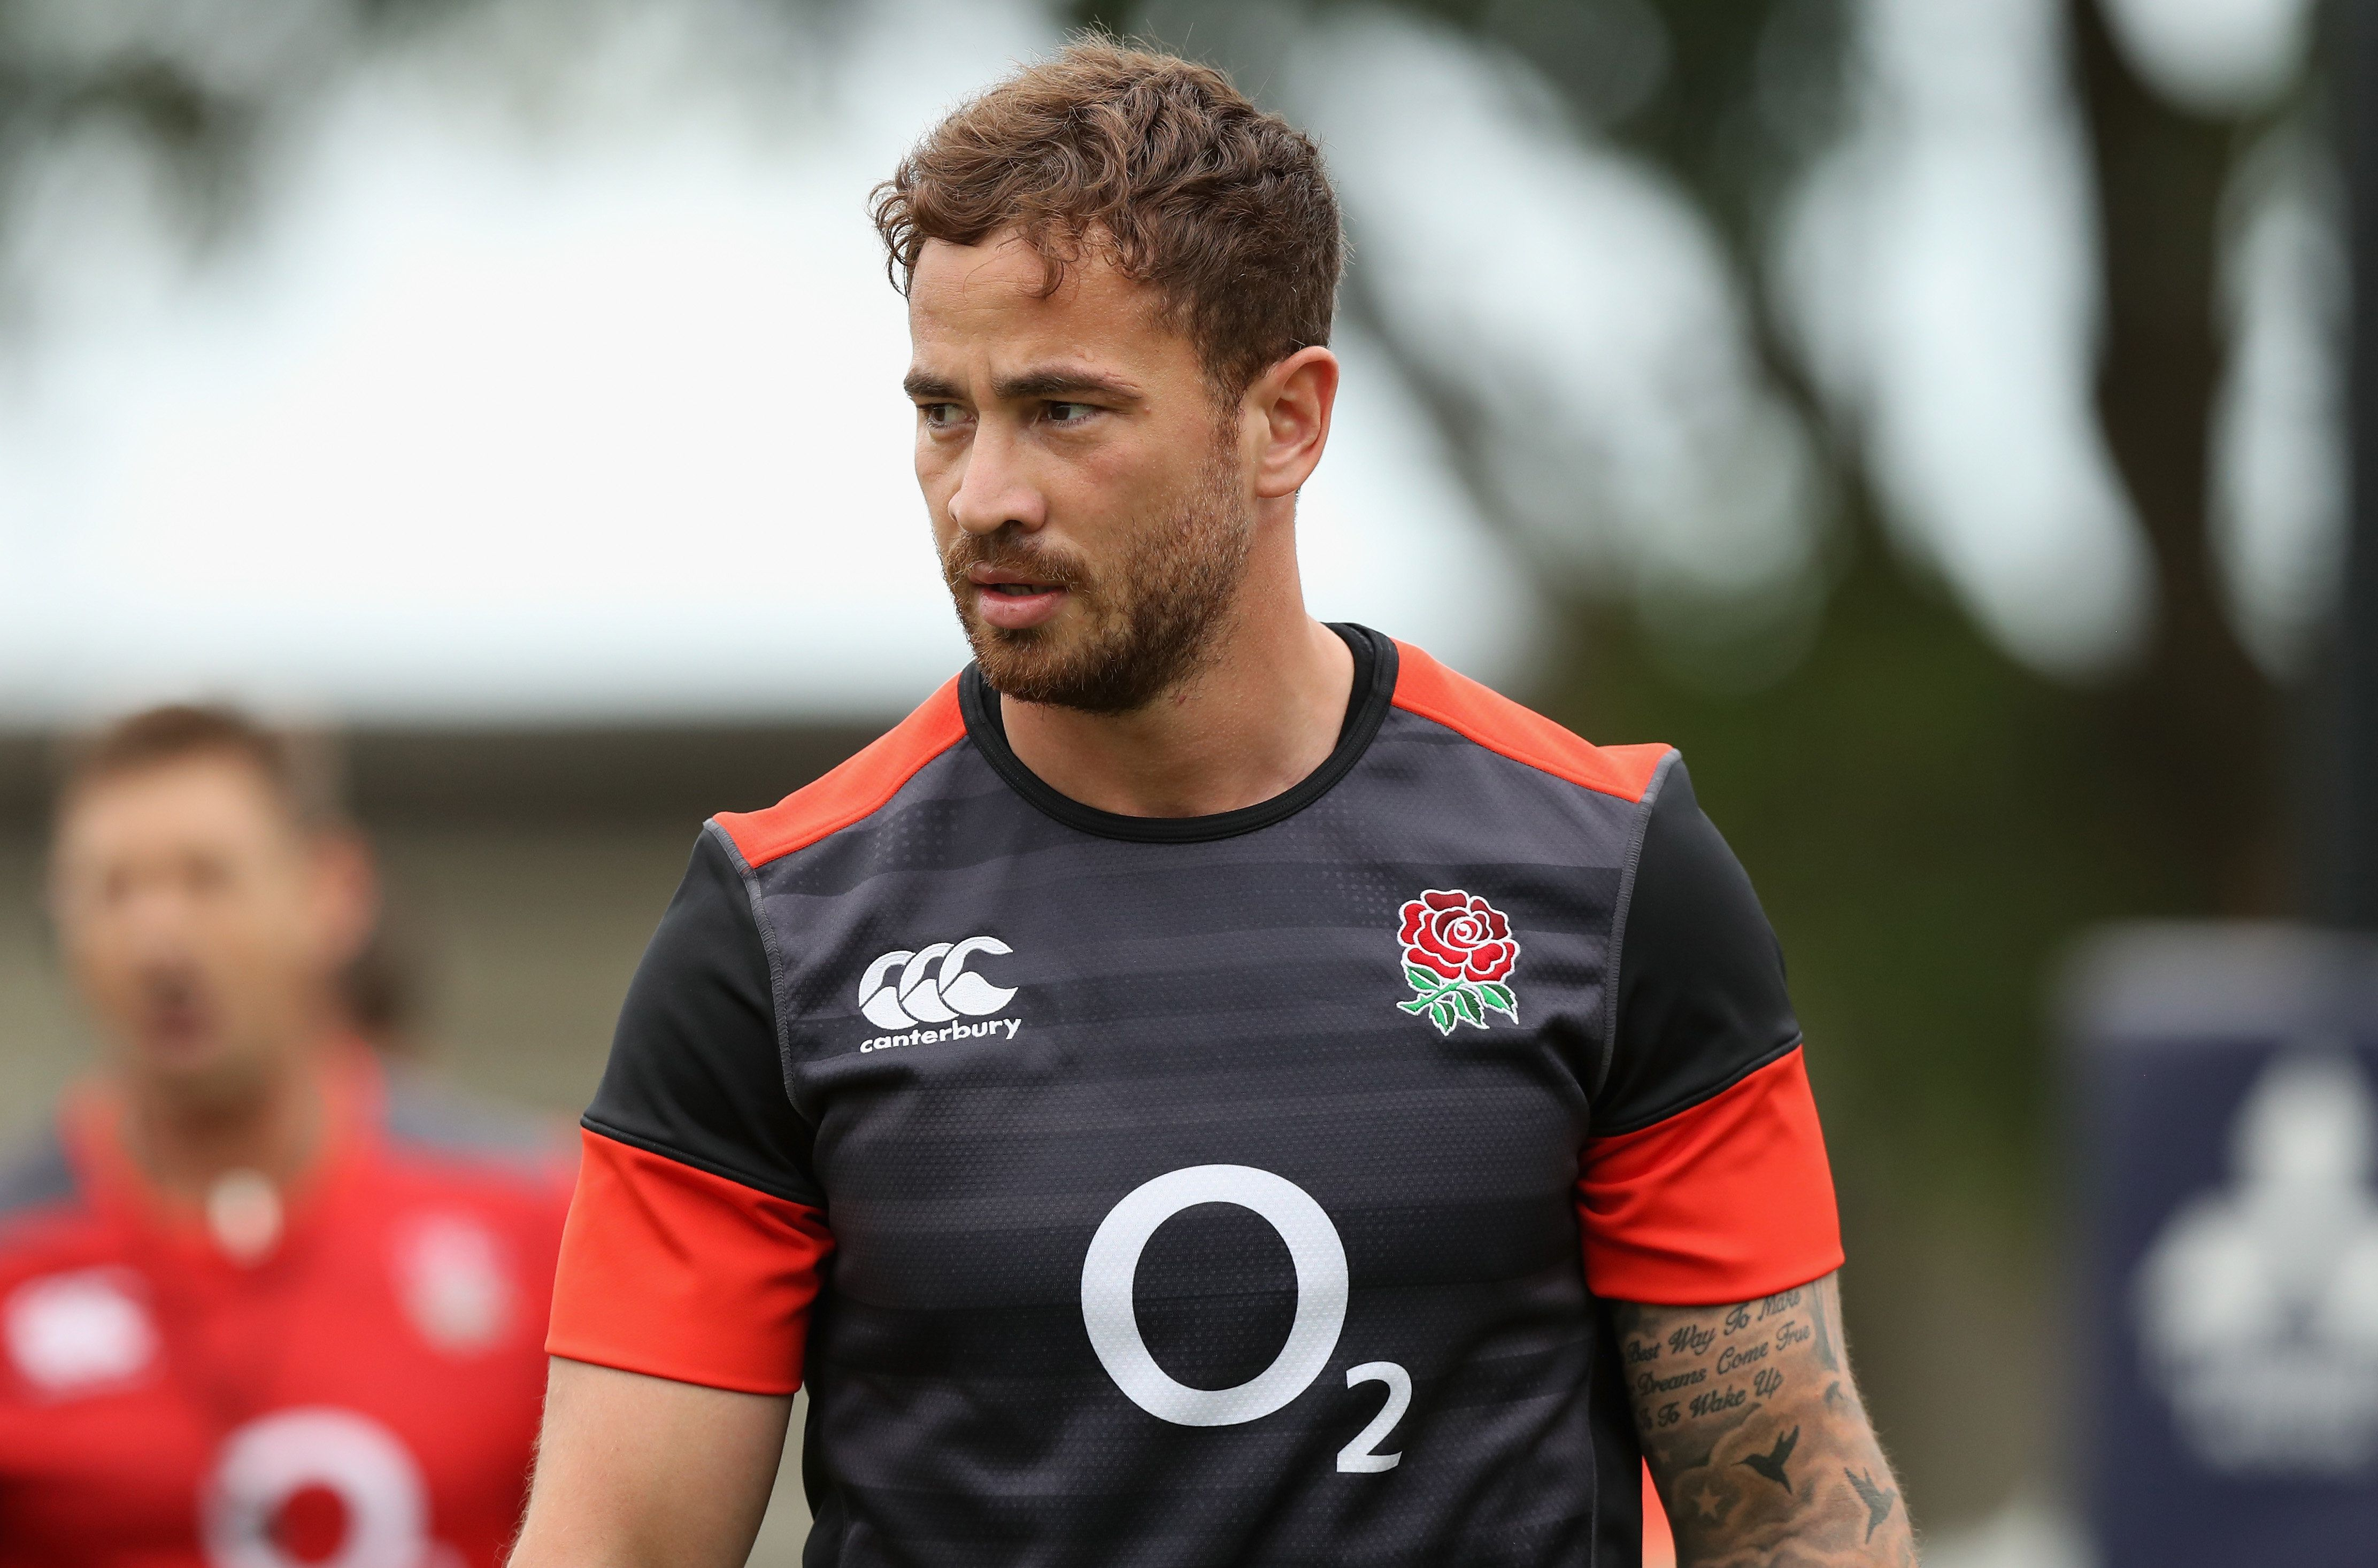 England Rugby Star Danny Cipriani Charged After 'Nightclub Incident' In